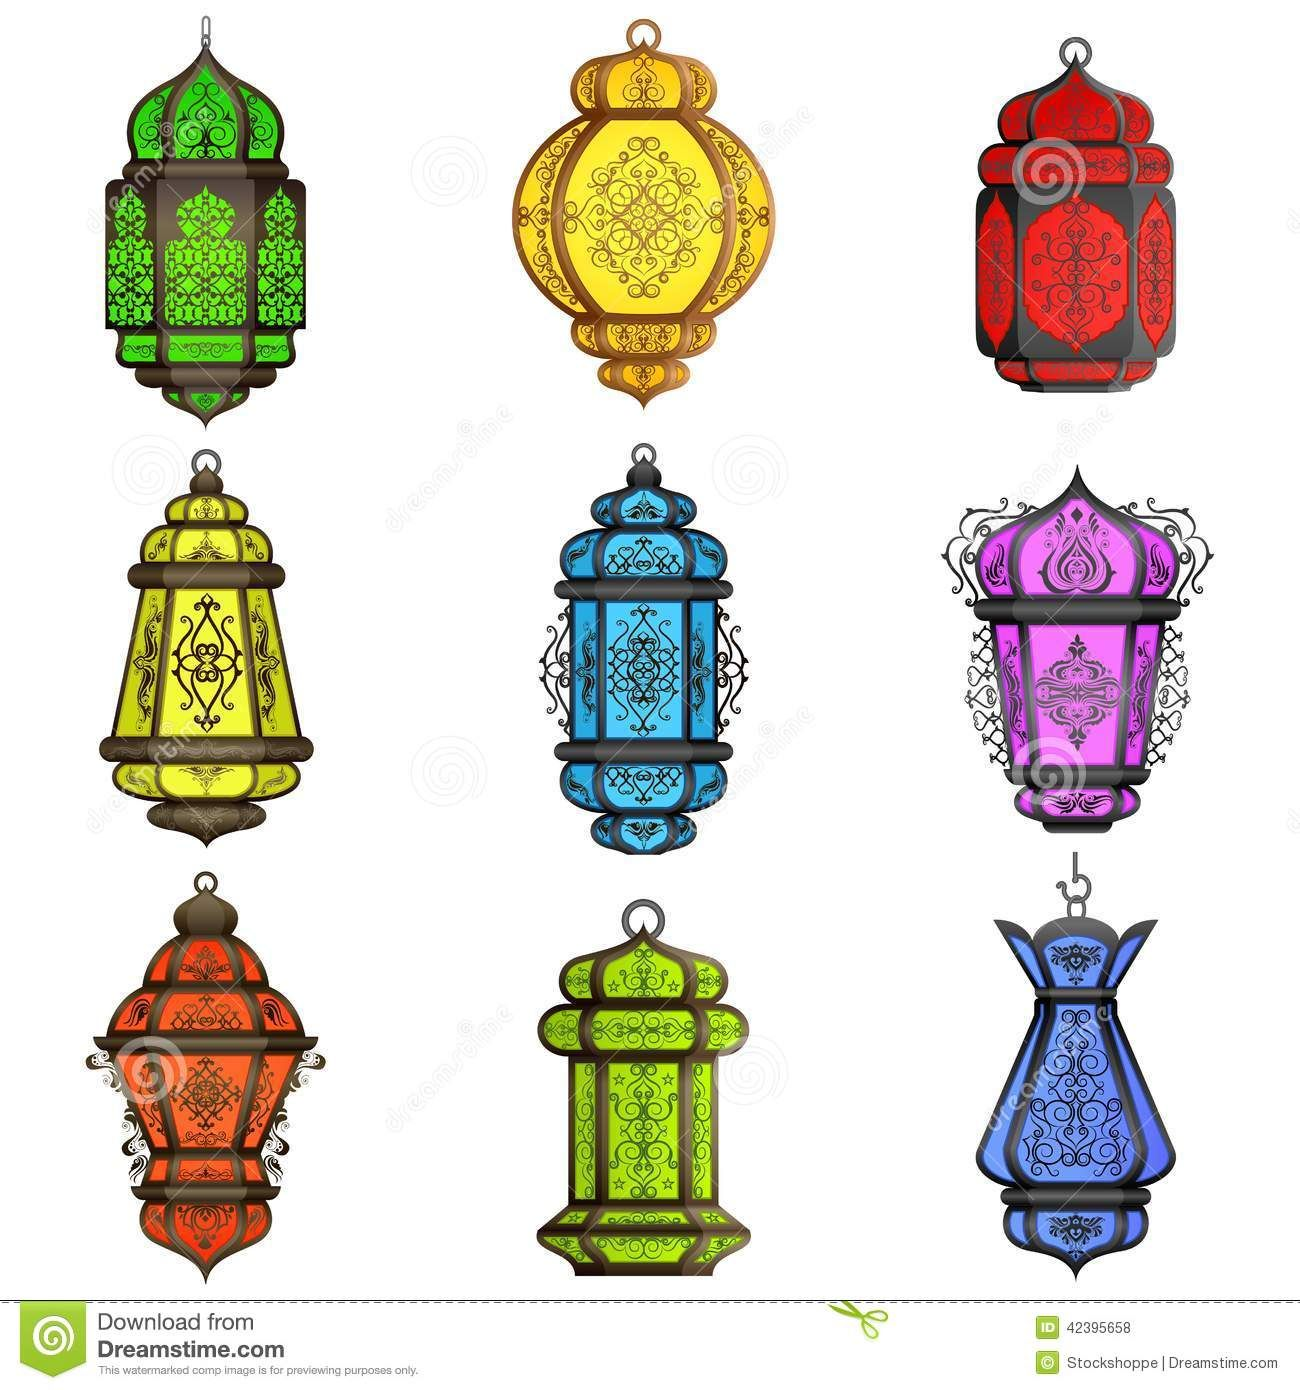 Colorful Arabic Lamp Download From Over 43 Million High Quality